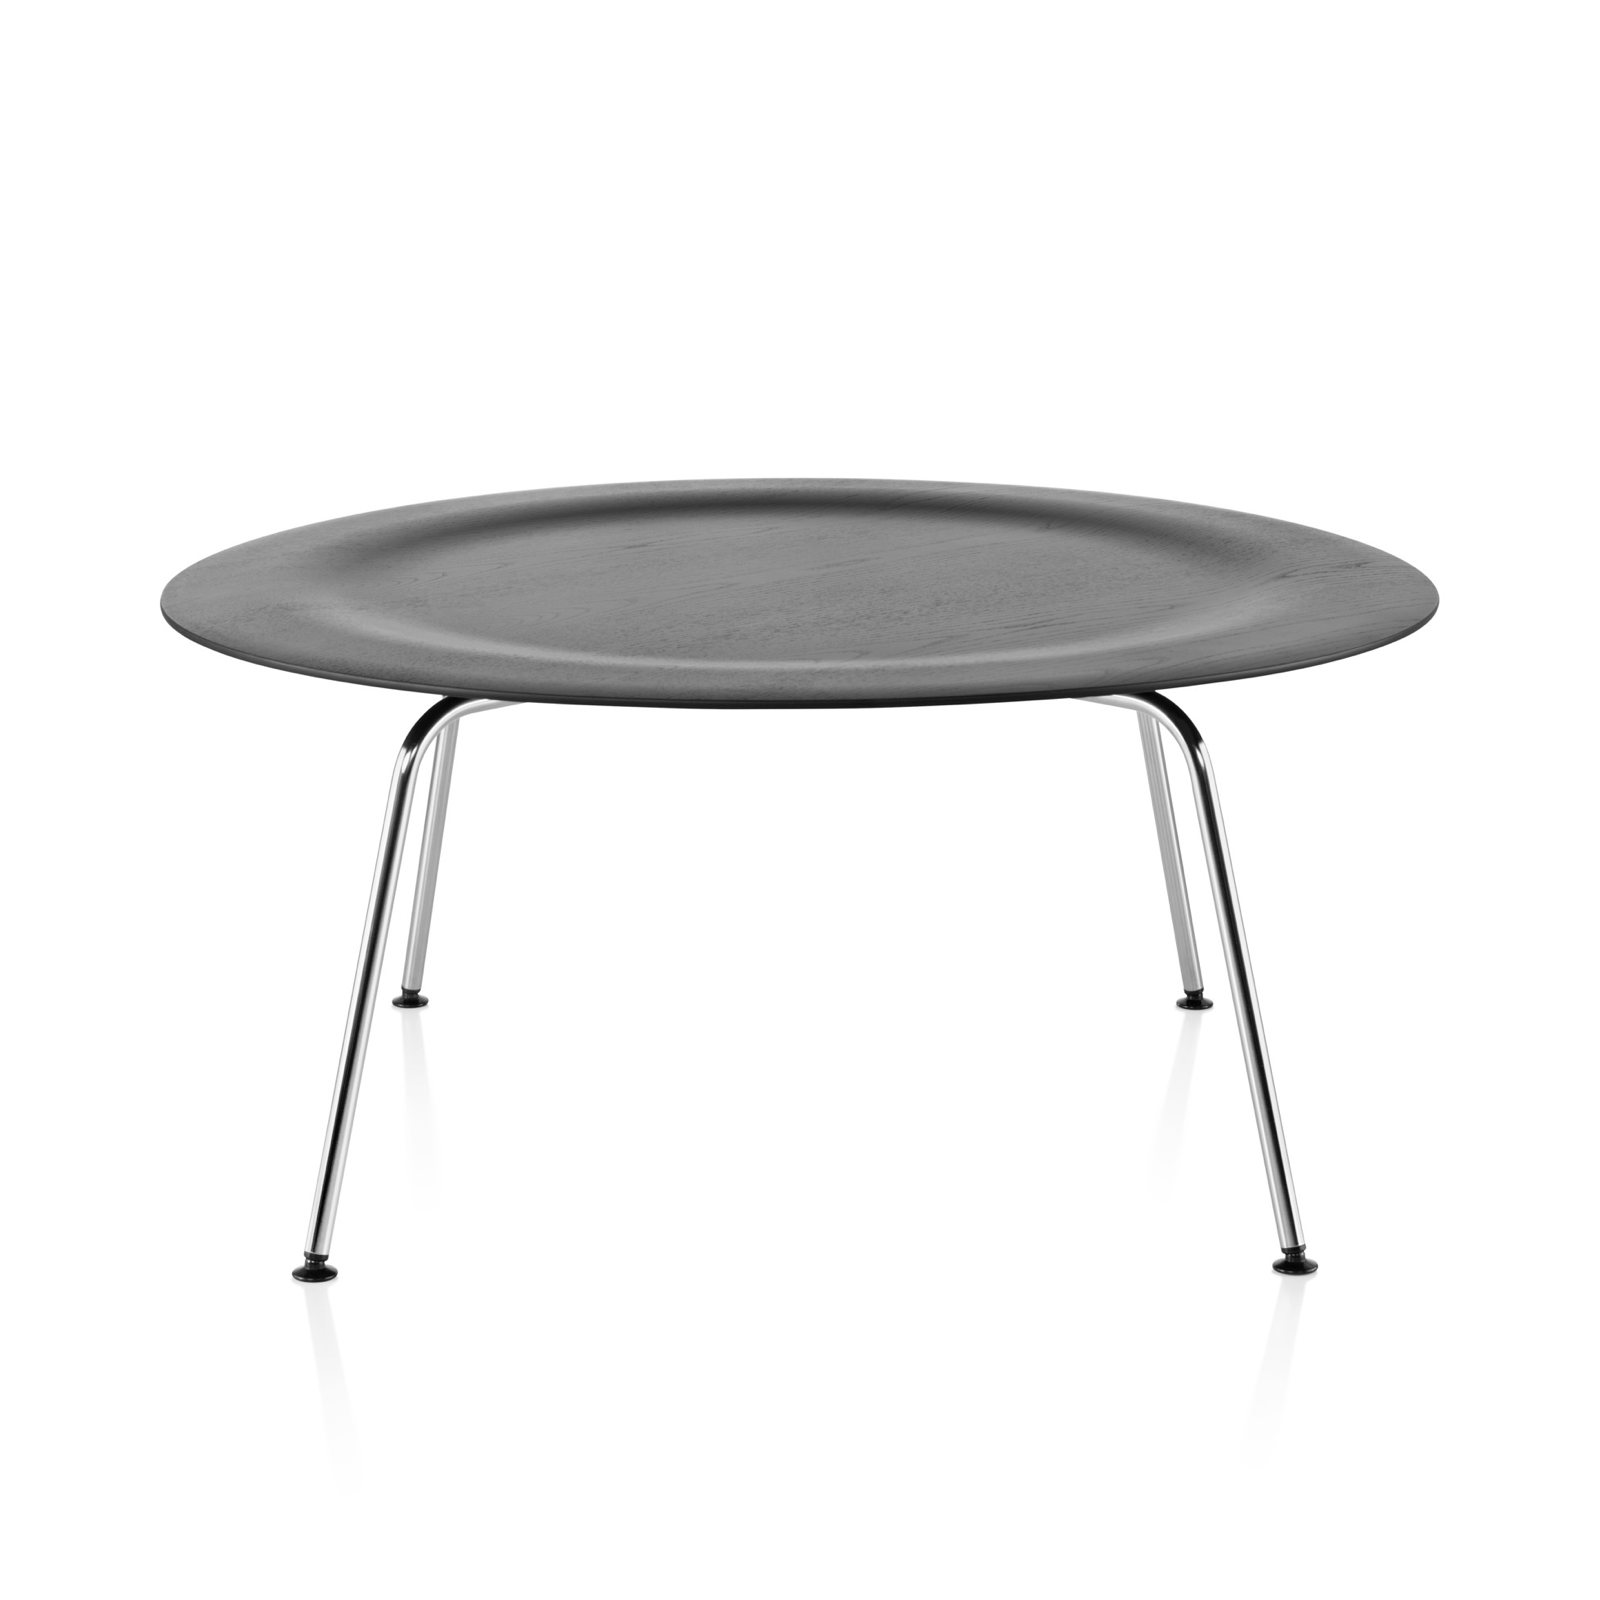 Eames Molded Plywood Coffee Table Metal Base By Charles U0026 Ray Eames For  Herman Miller